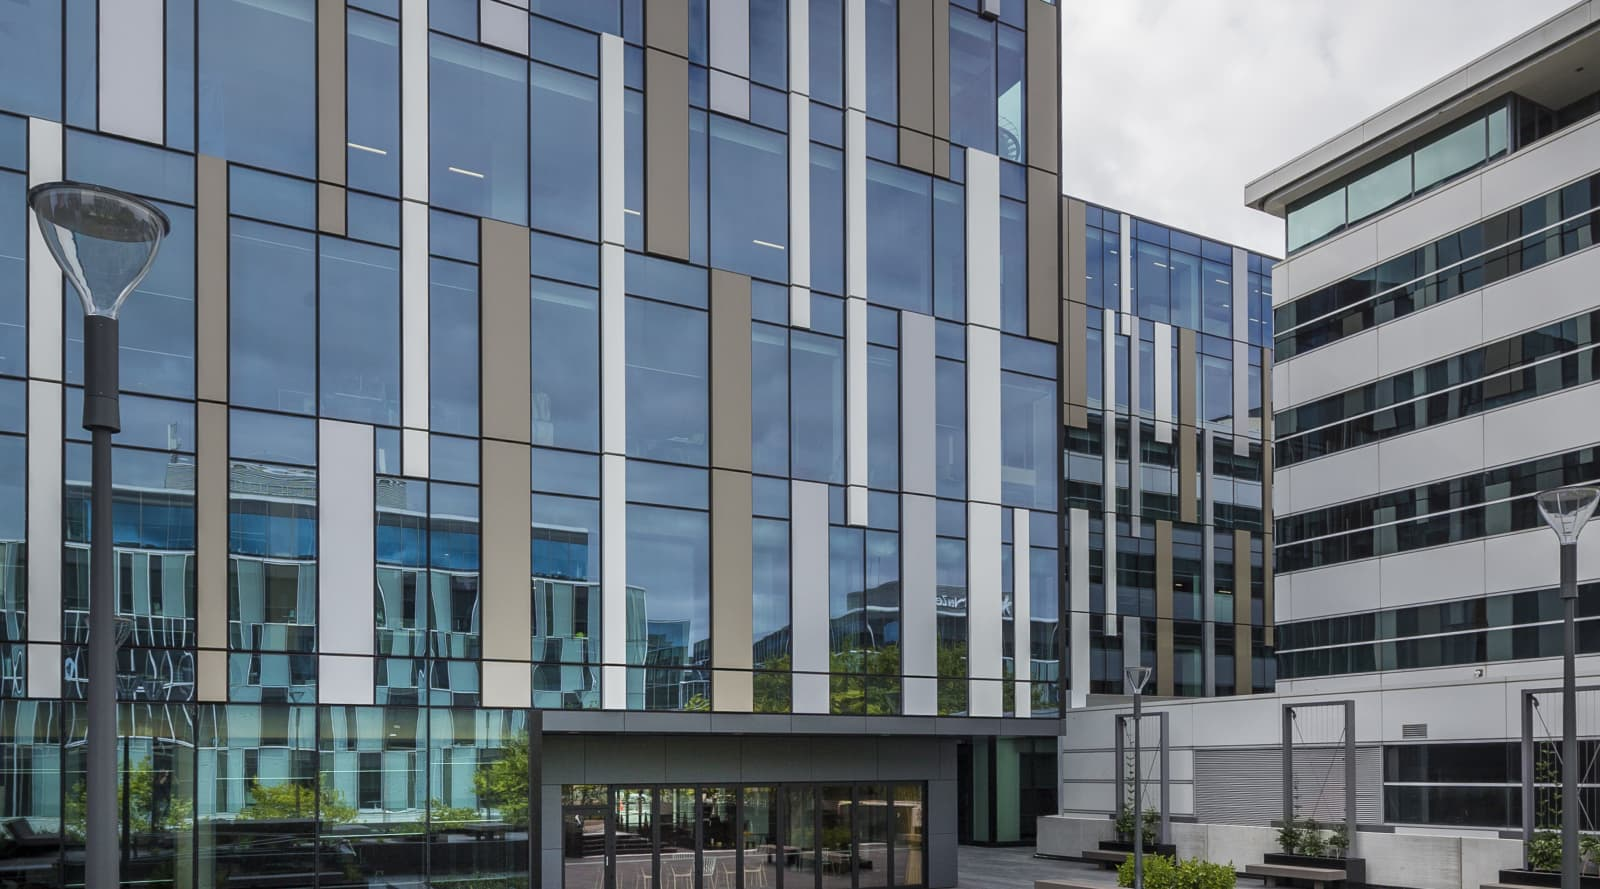 Contemporary mixed-use building complex with linking glass…